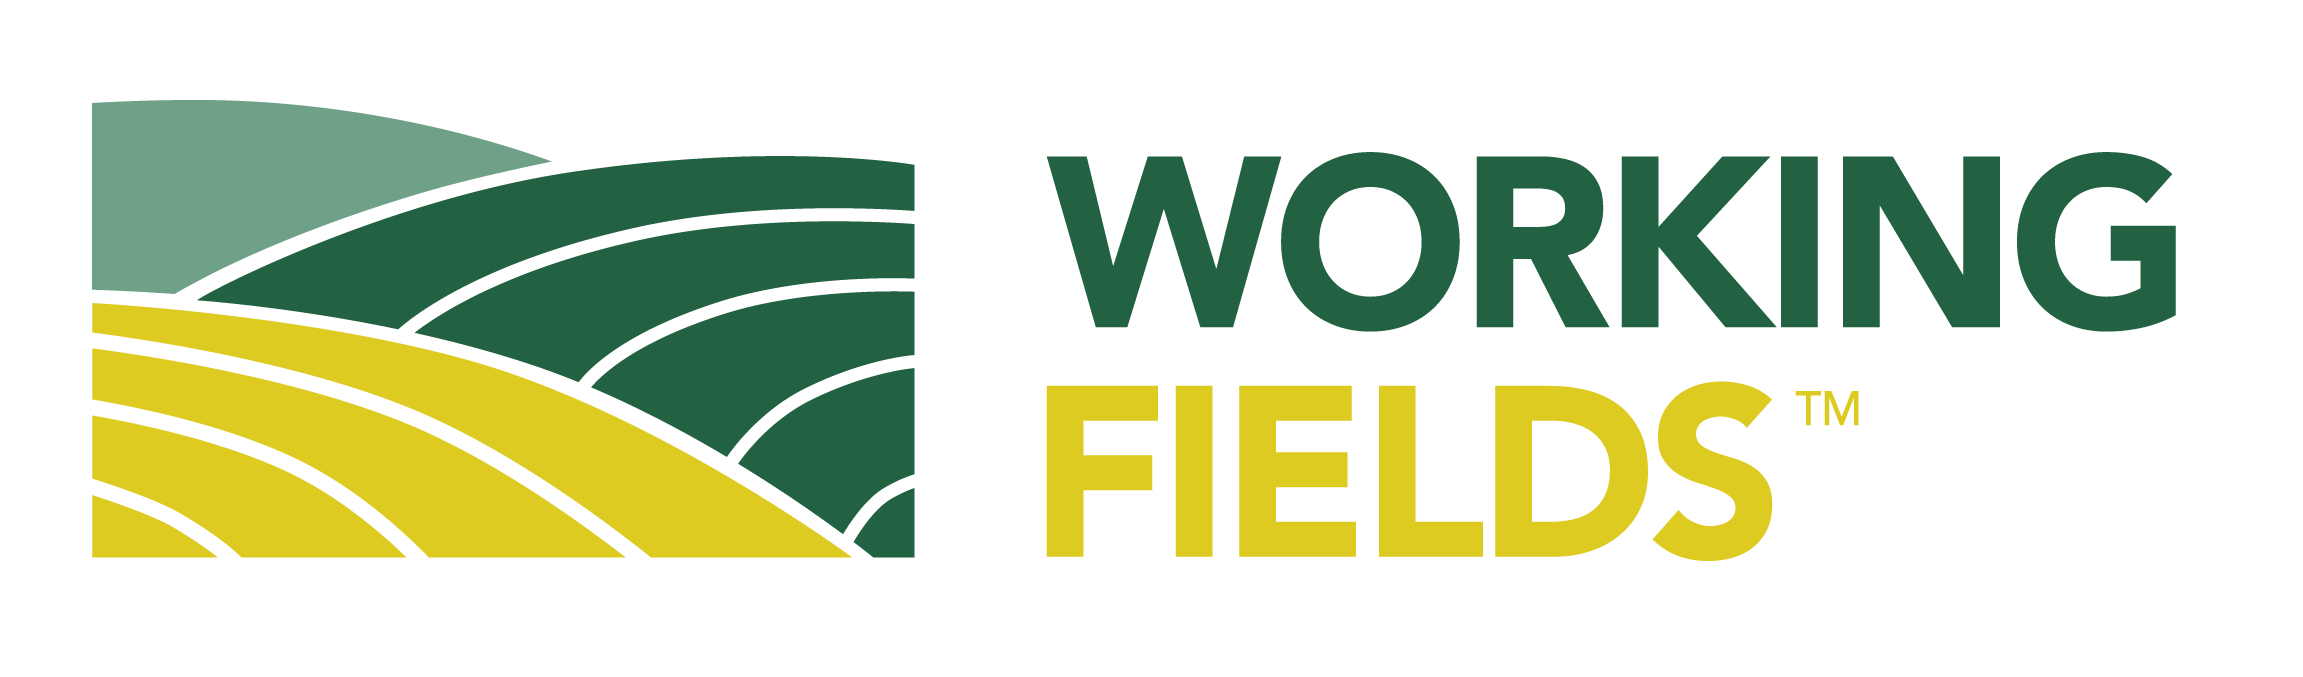 Working Fields LLC